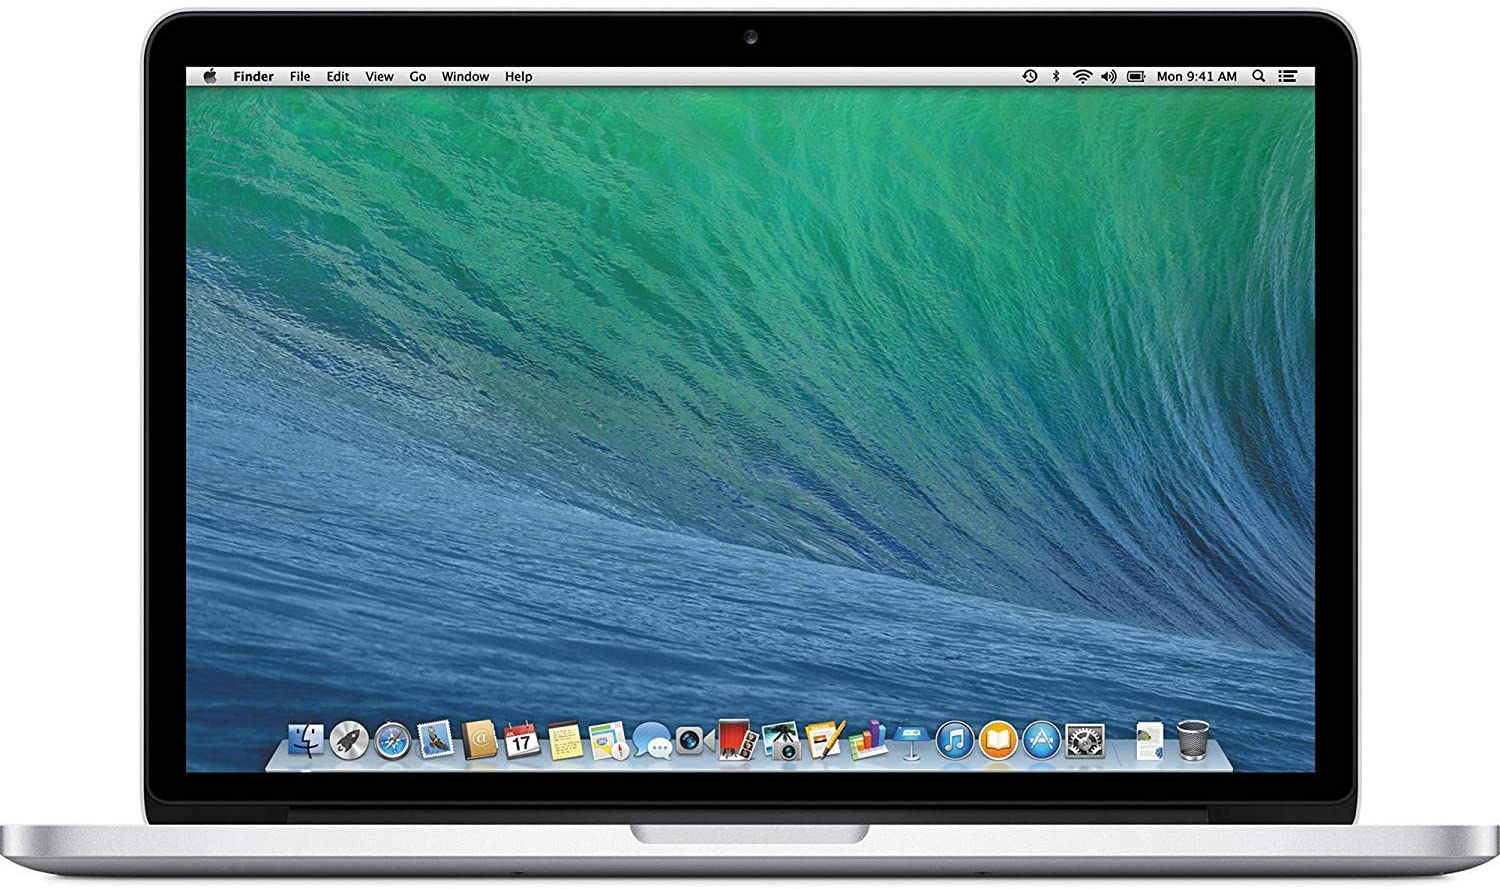 Apple Macbook Pro FE865LL\A 13-Inch Laptop Retina Display(2.4GHz dual-core Intel i5 ,8GB RAM, 256GB SSD) (Renewed)